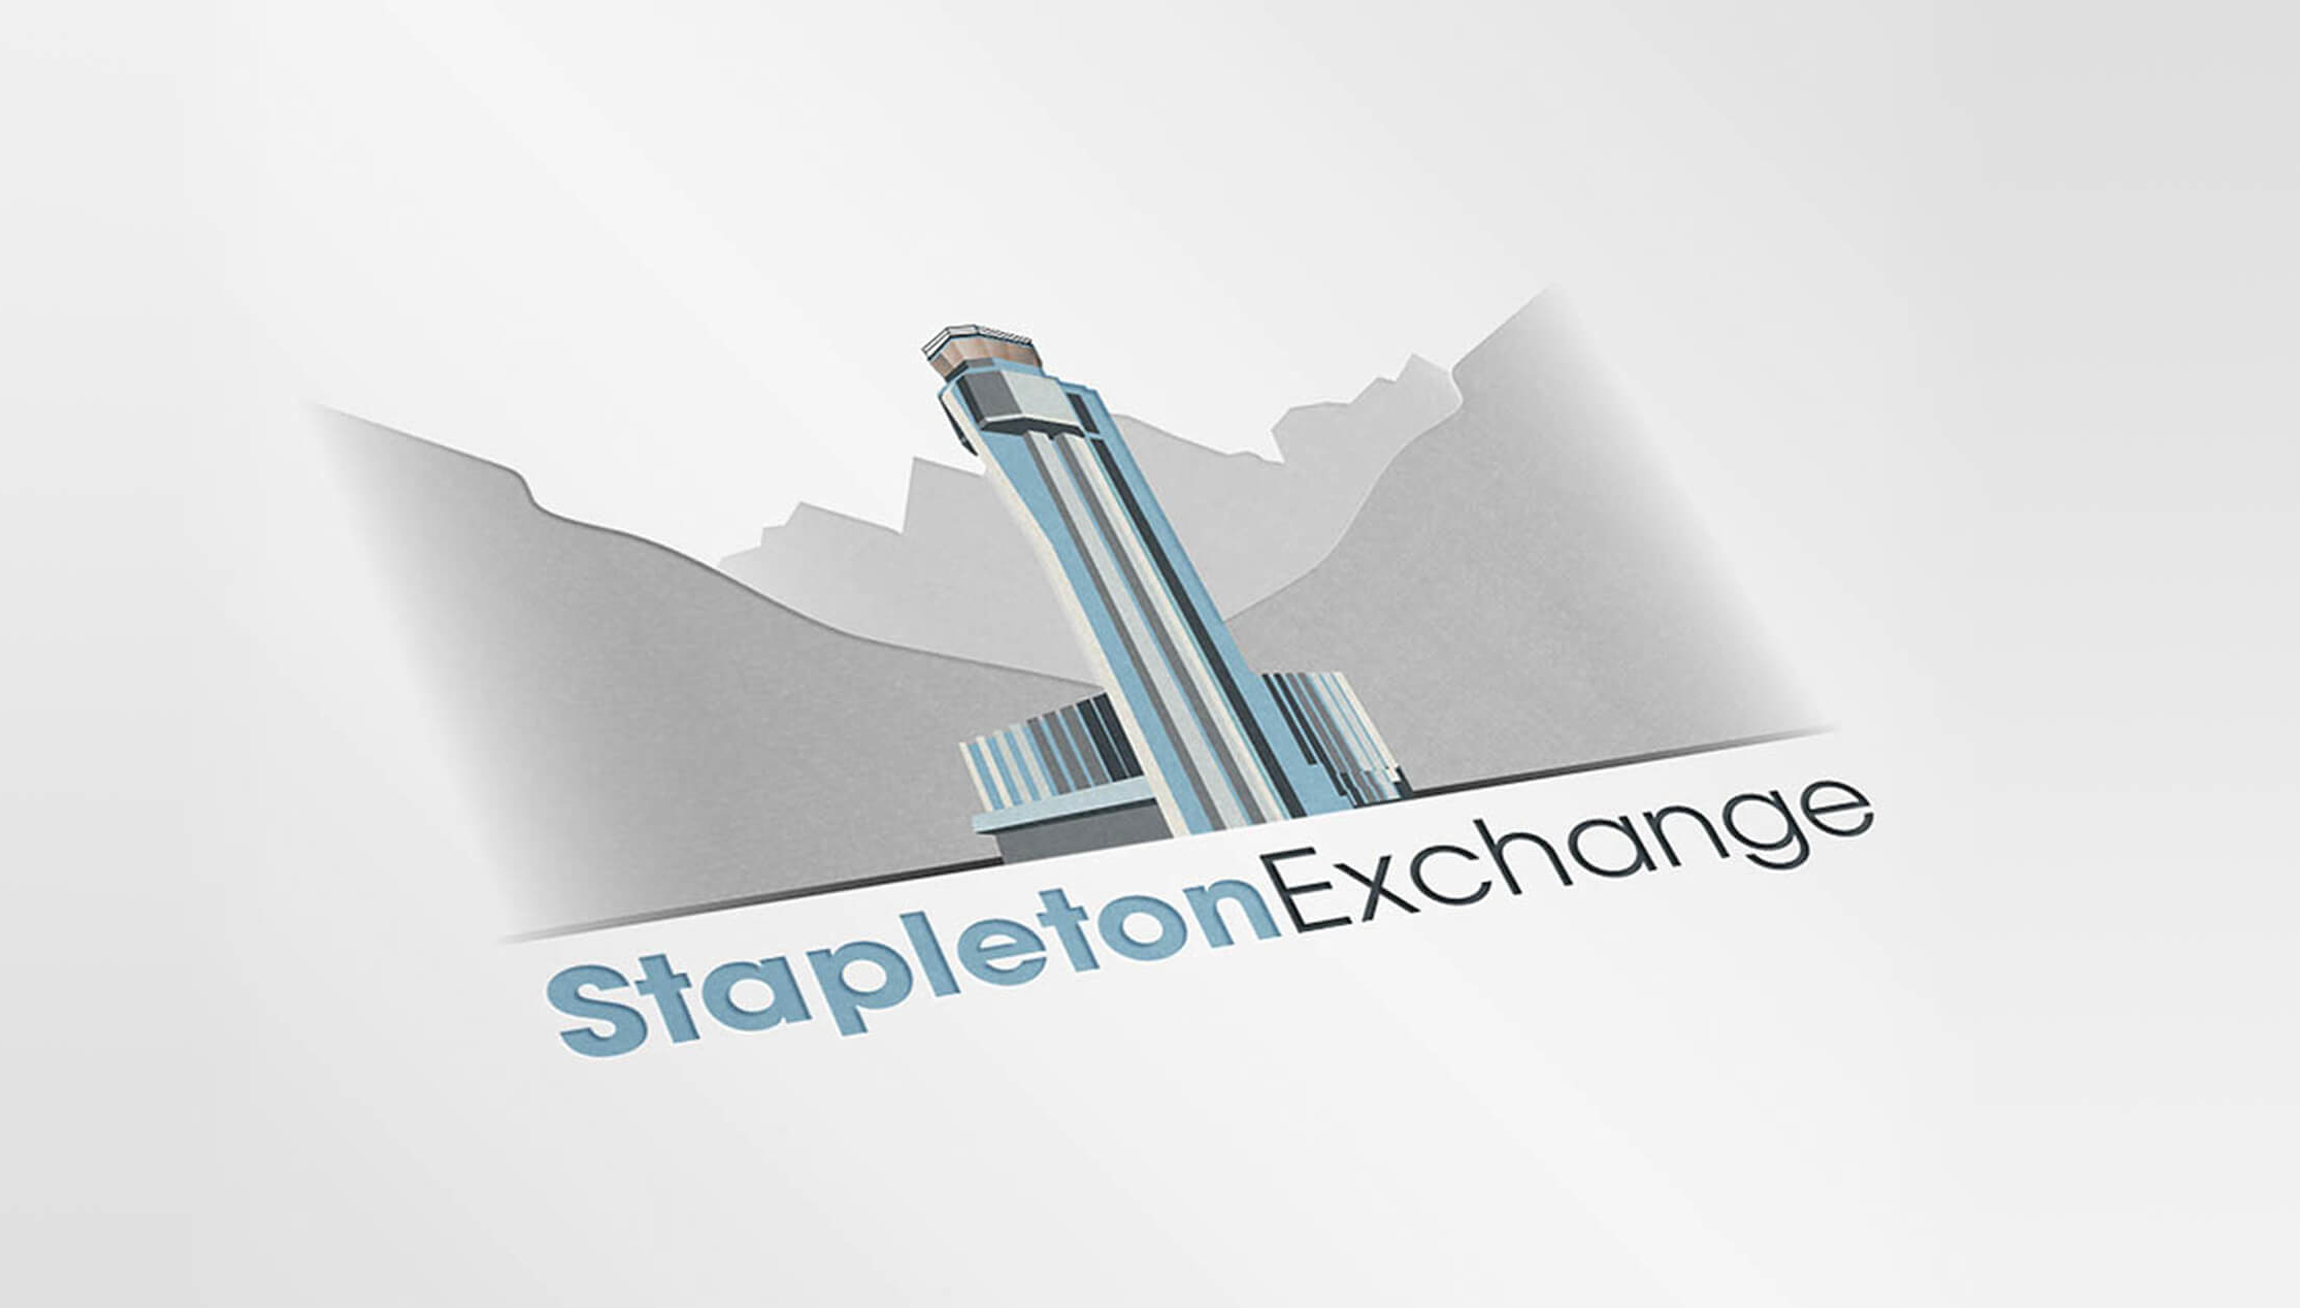 Logo & Branding - Logo design mockup for Stapleton Exchange